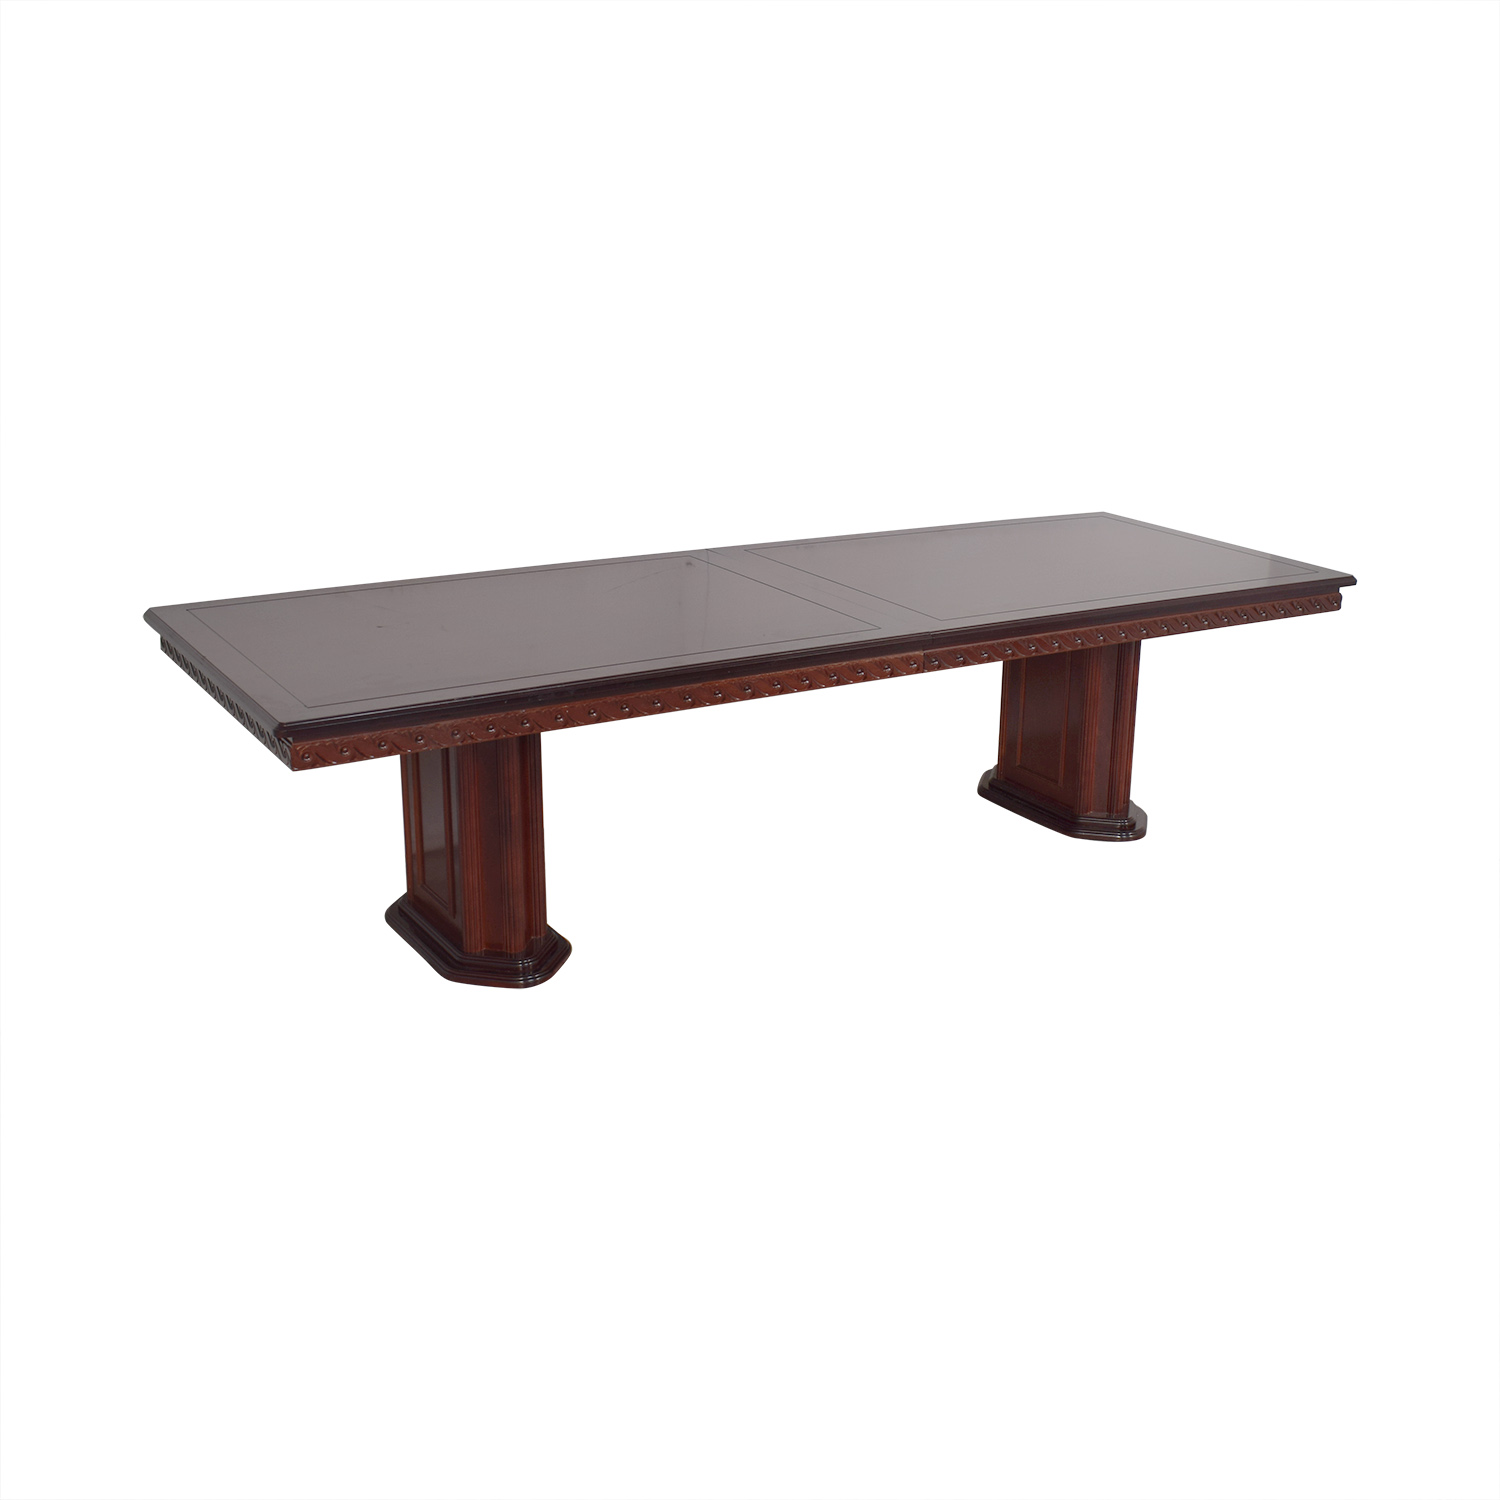 Rectangular Extendable Dining Room Table on sale